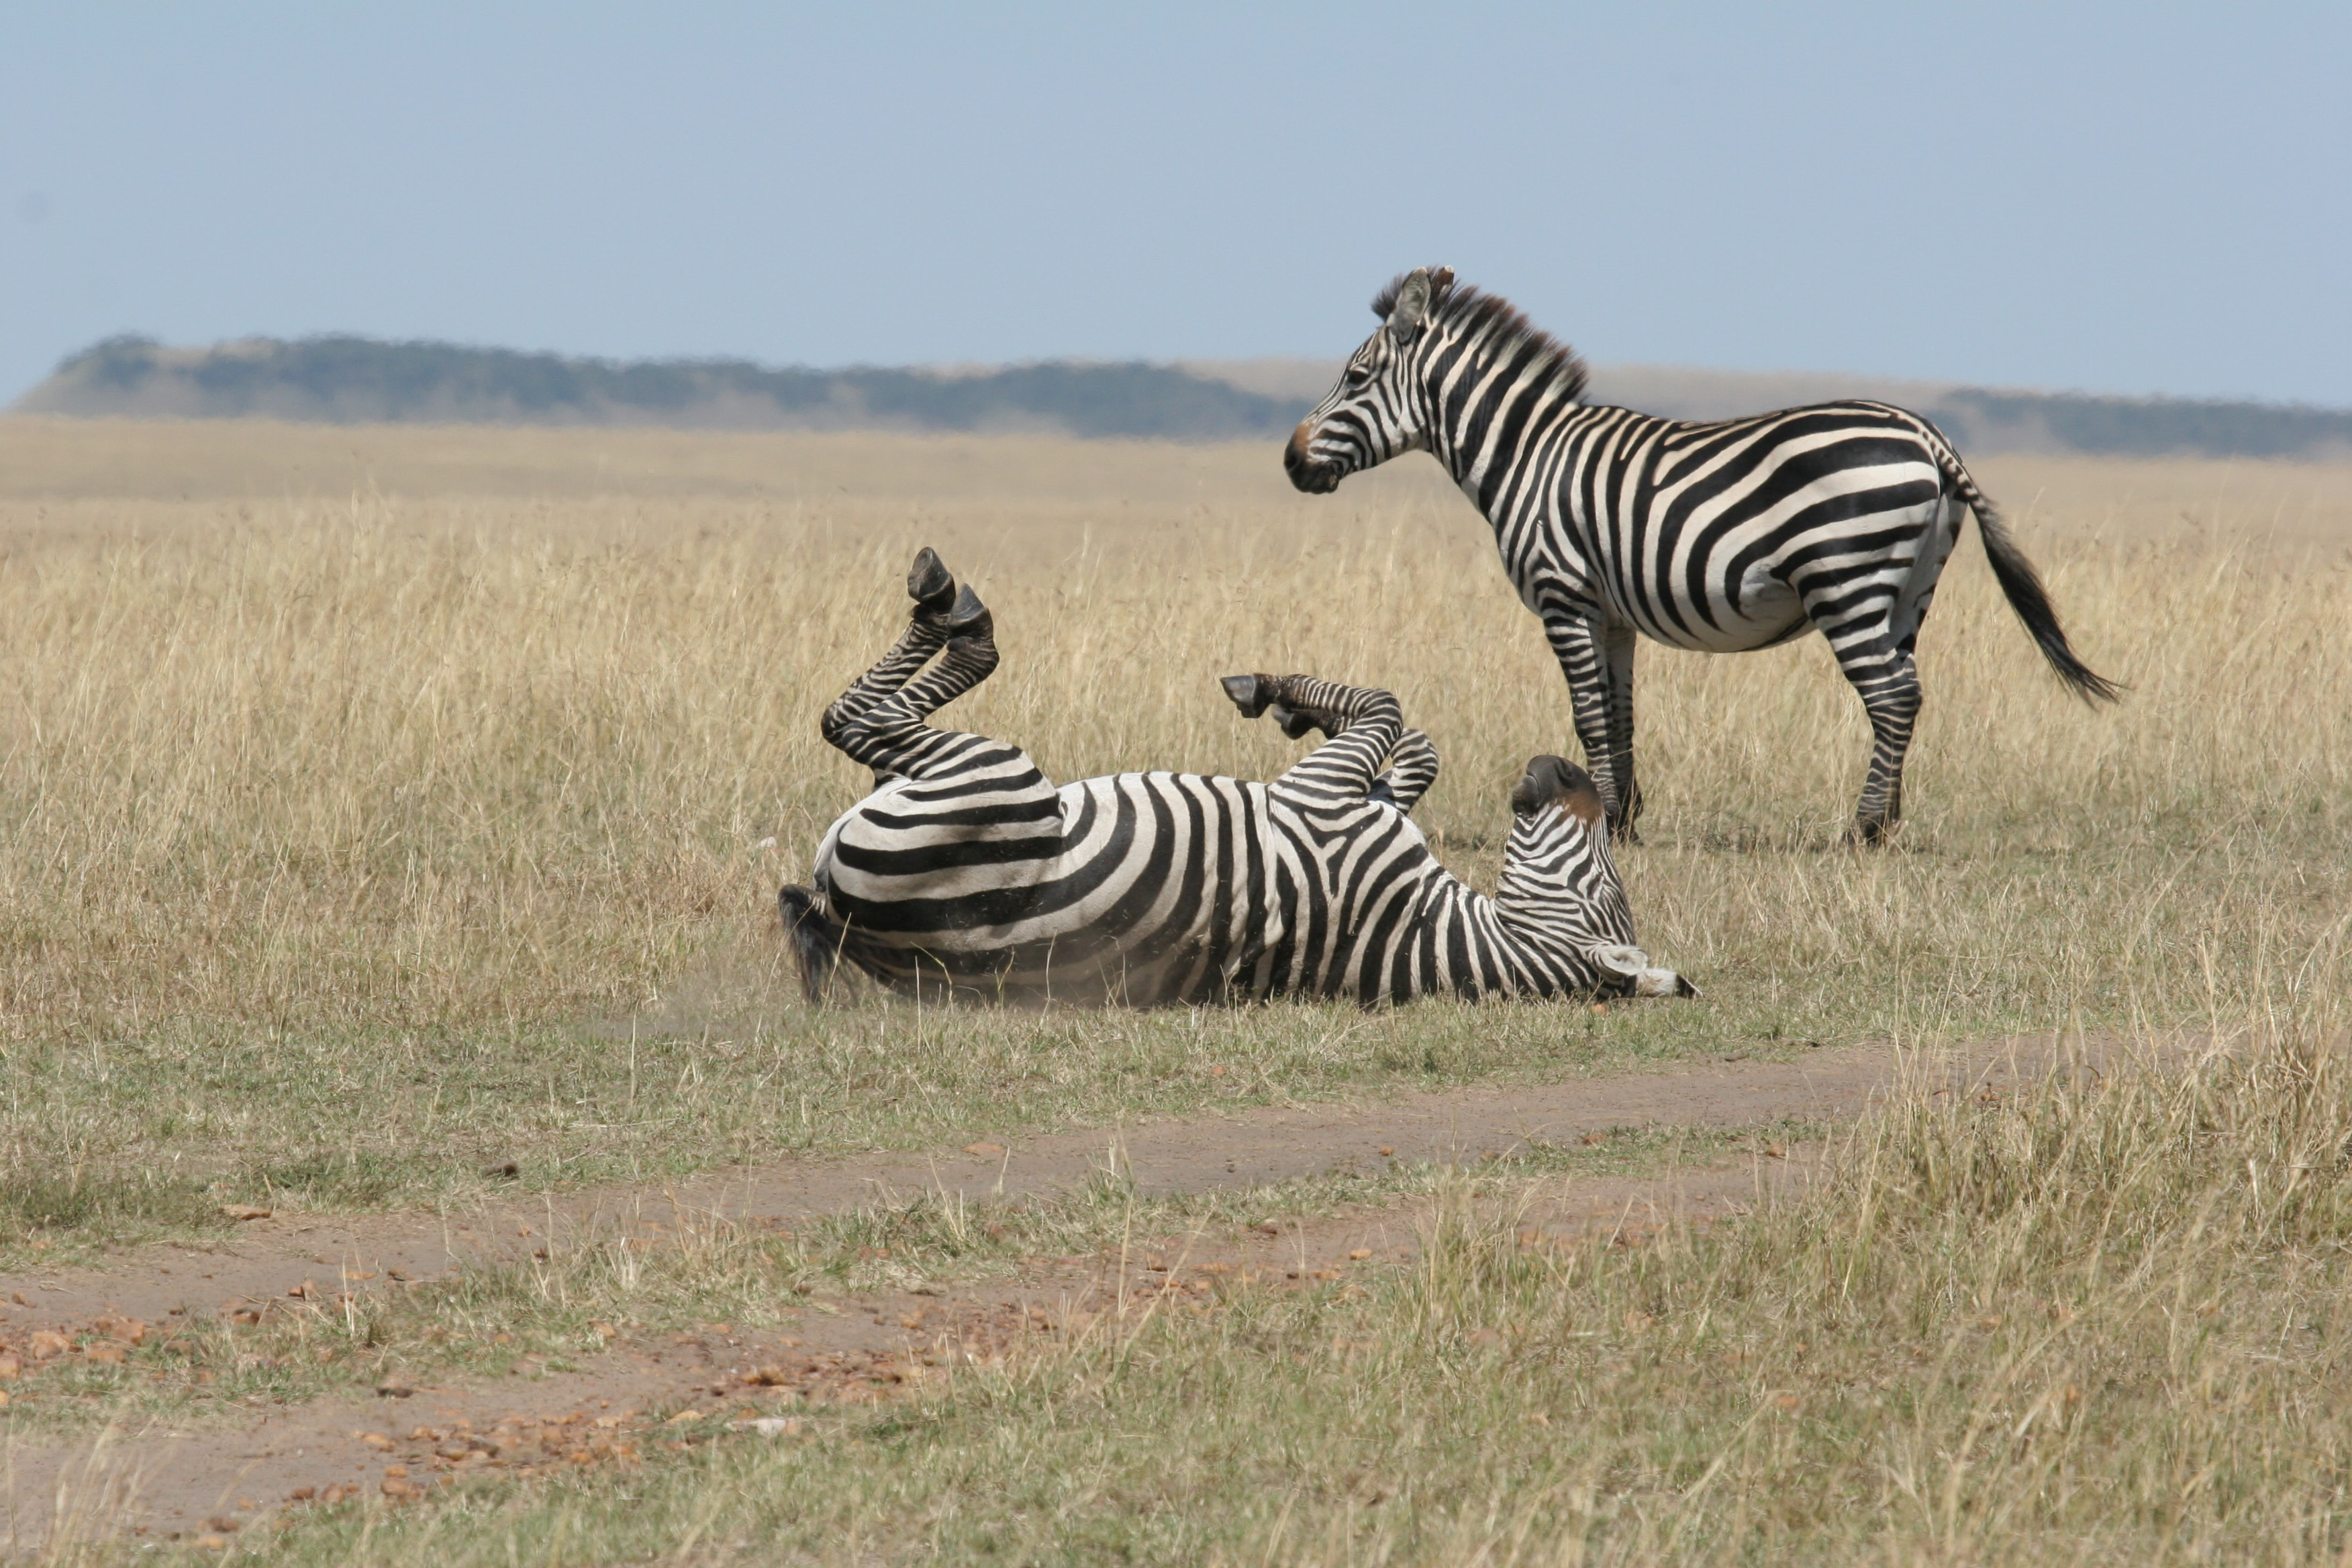 two zebras in the wildlife